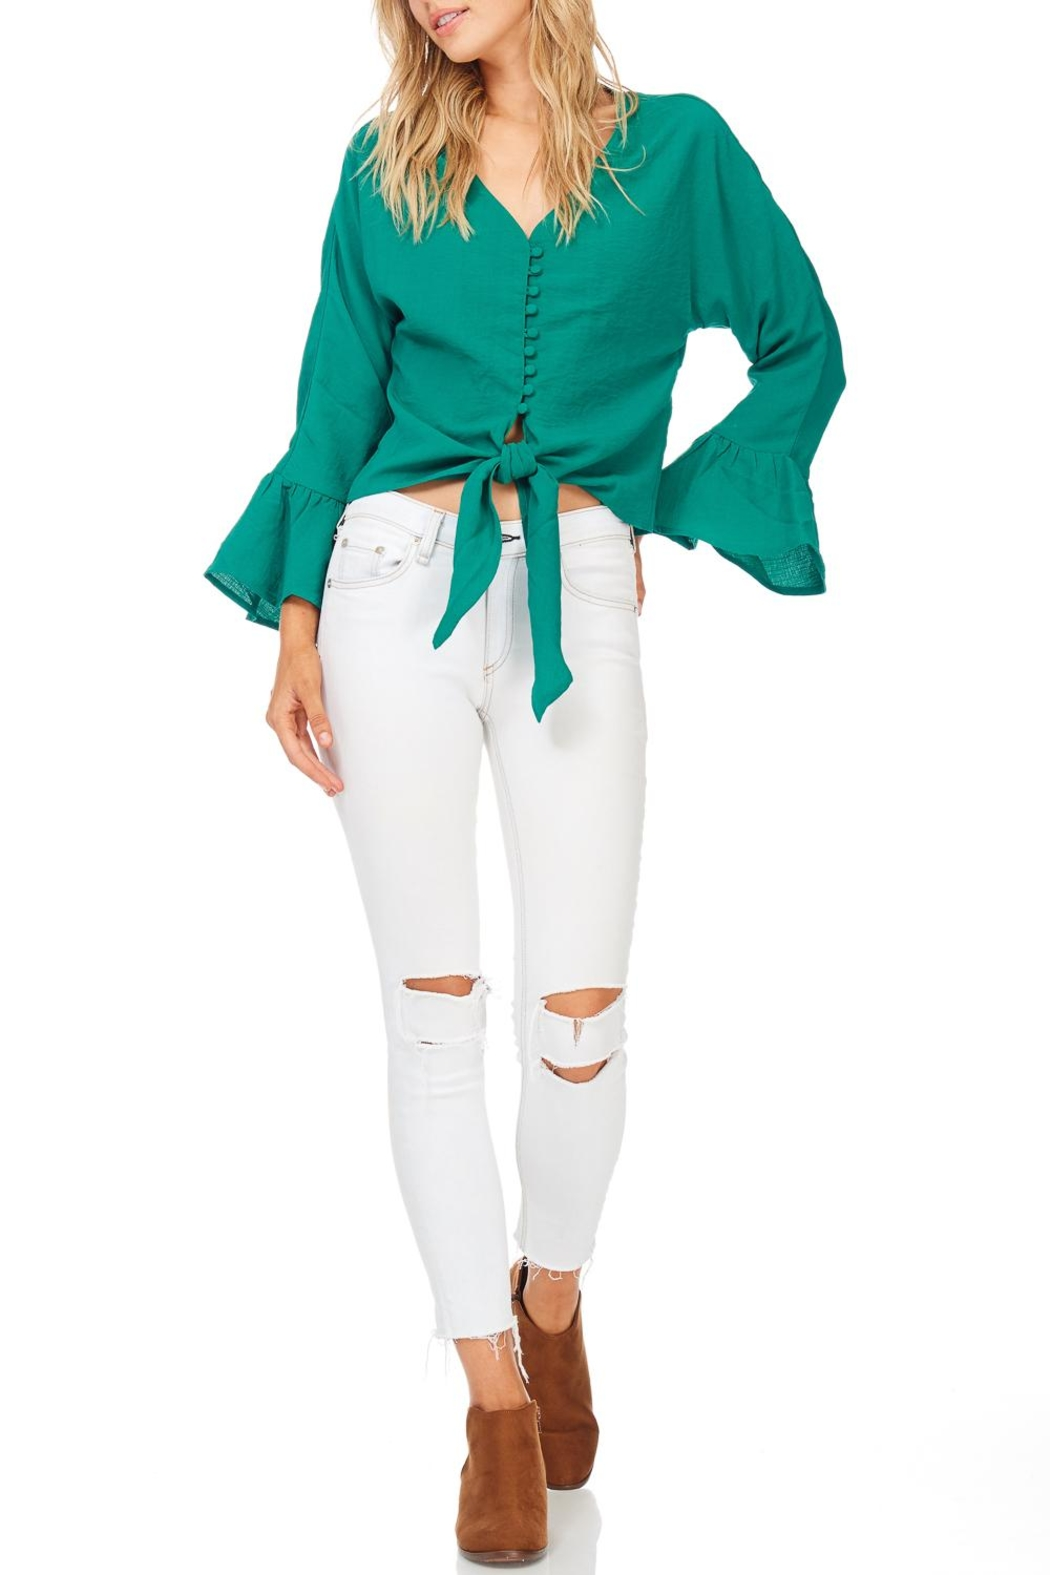 Miss Love Jade Bell Sleeve Blouse - Front Cropped Image